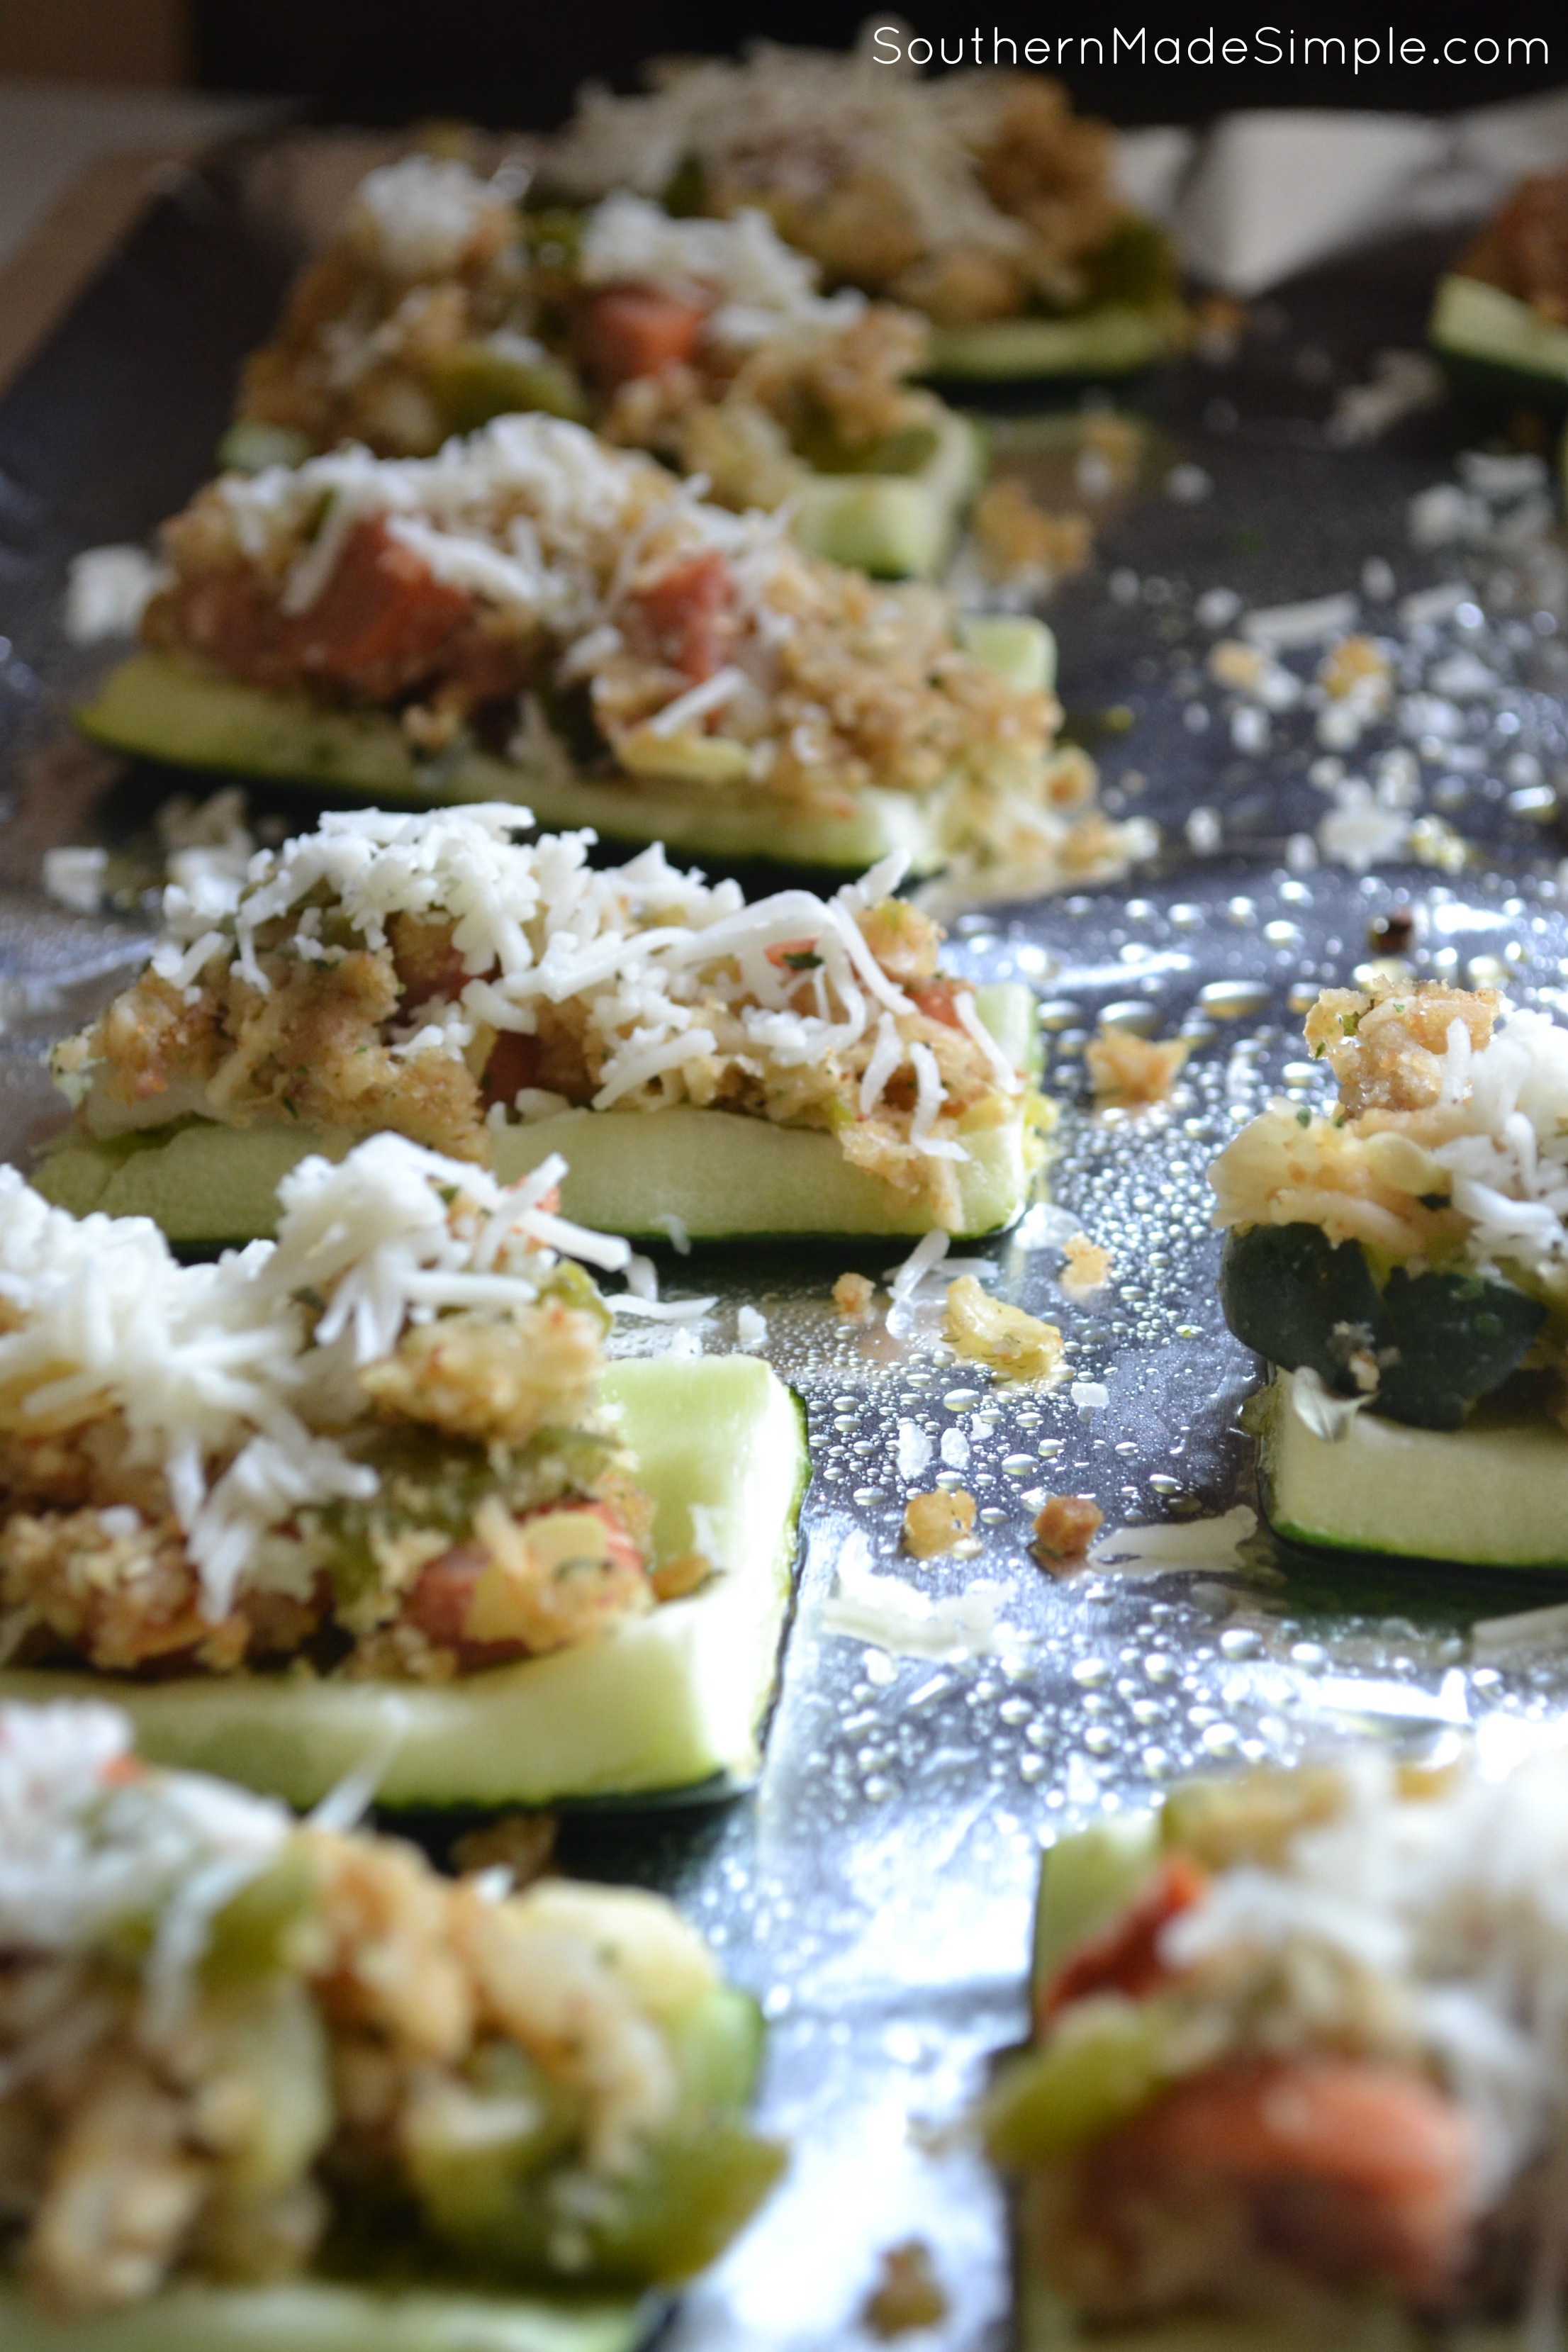 Looking for something new to do with Zucchini? These Cheesy Italian Zucchini Boats are a MUST make!